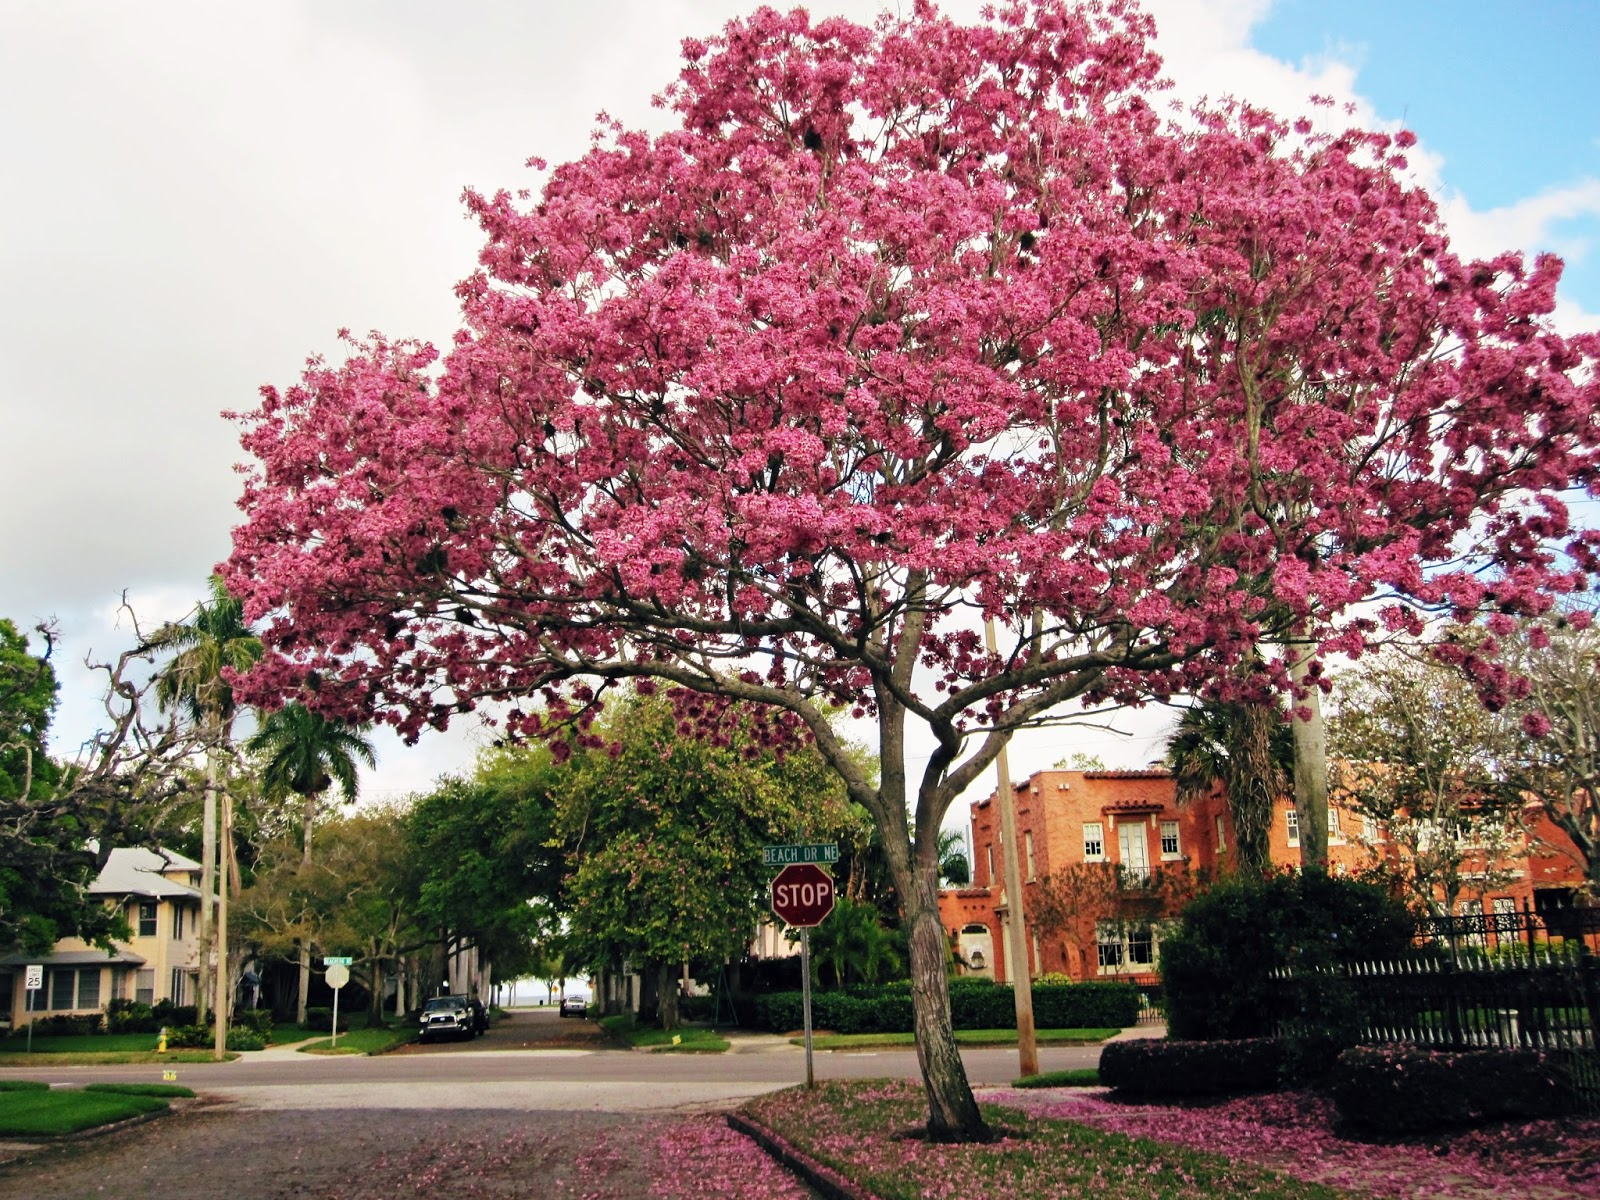 Spring Break In Florida | Beauty In The Midst Of Sorrow